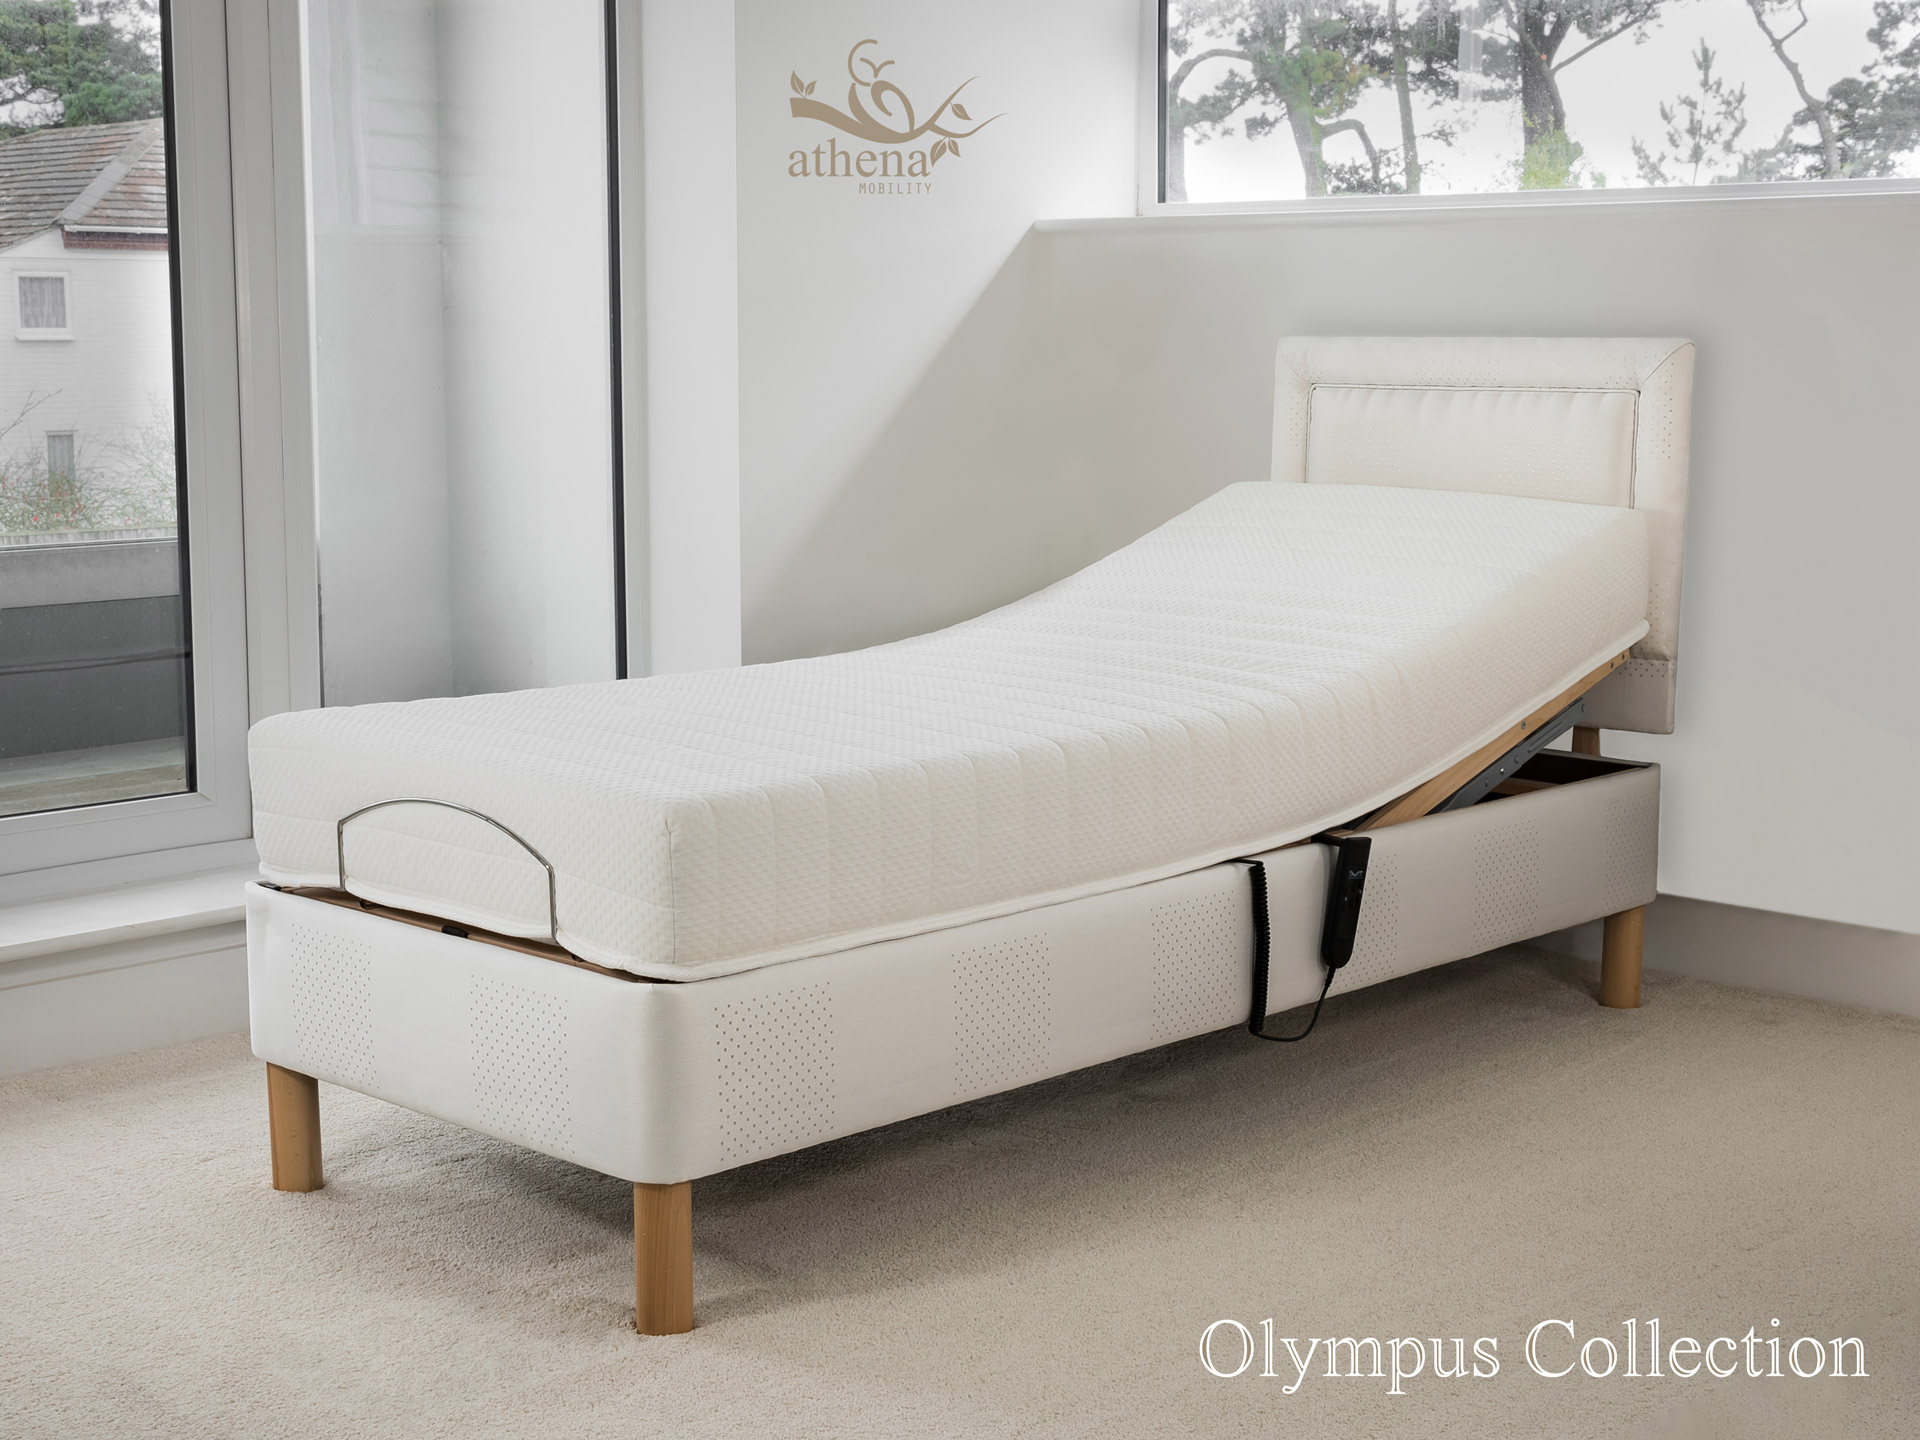 Athena Mobility | Olympus Bed Collection